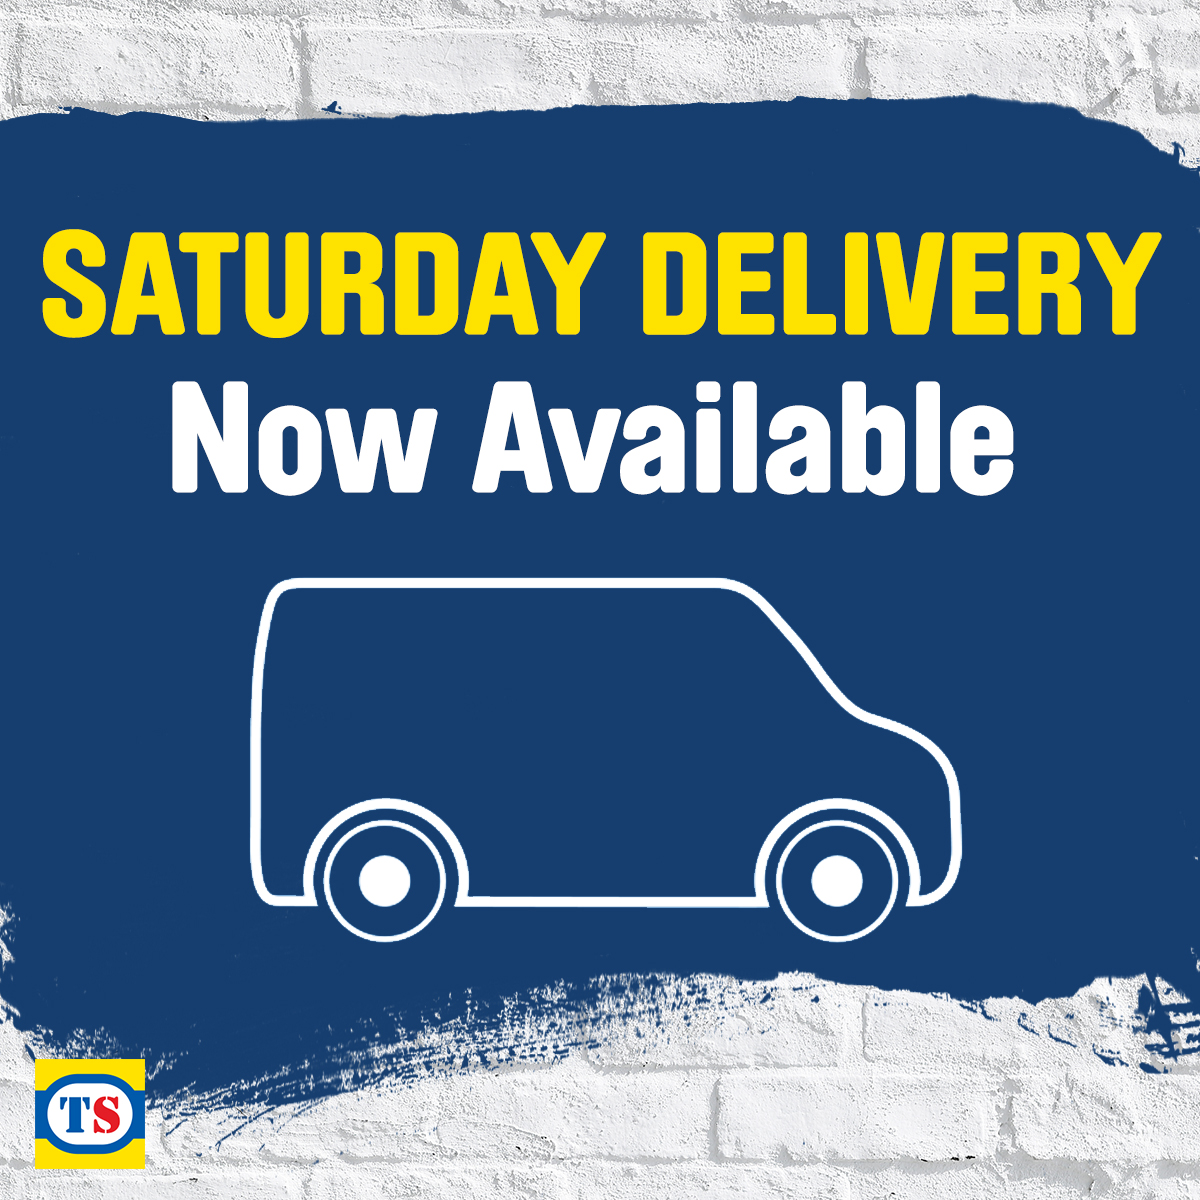 Toolstation now deliver on Saturday's